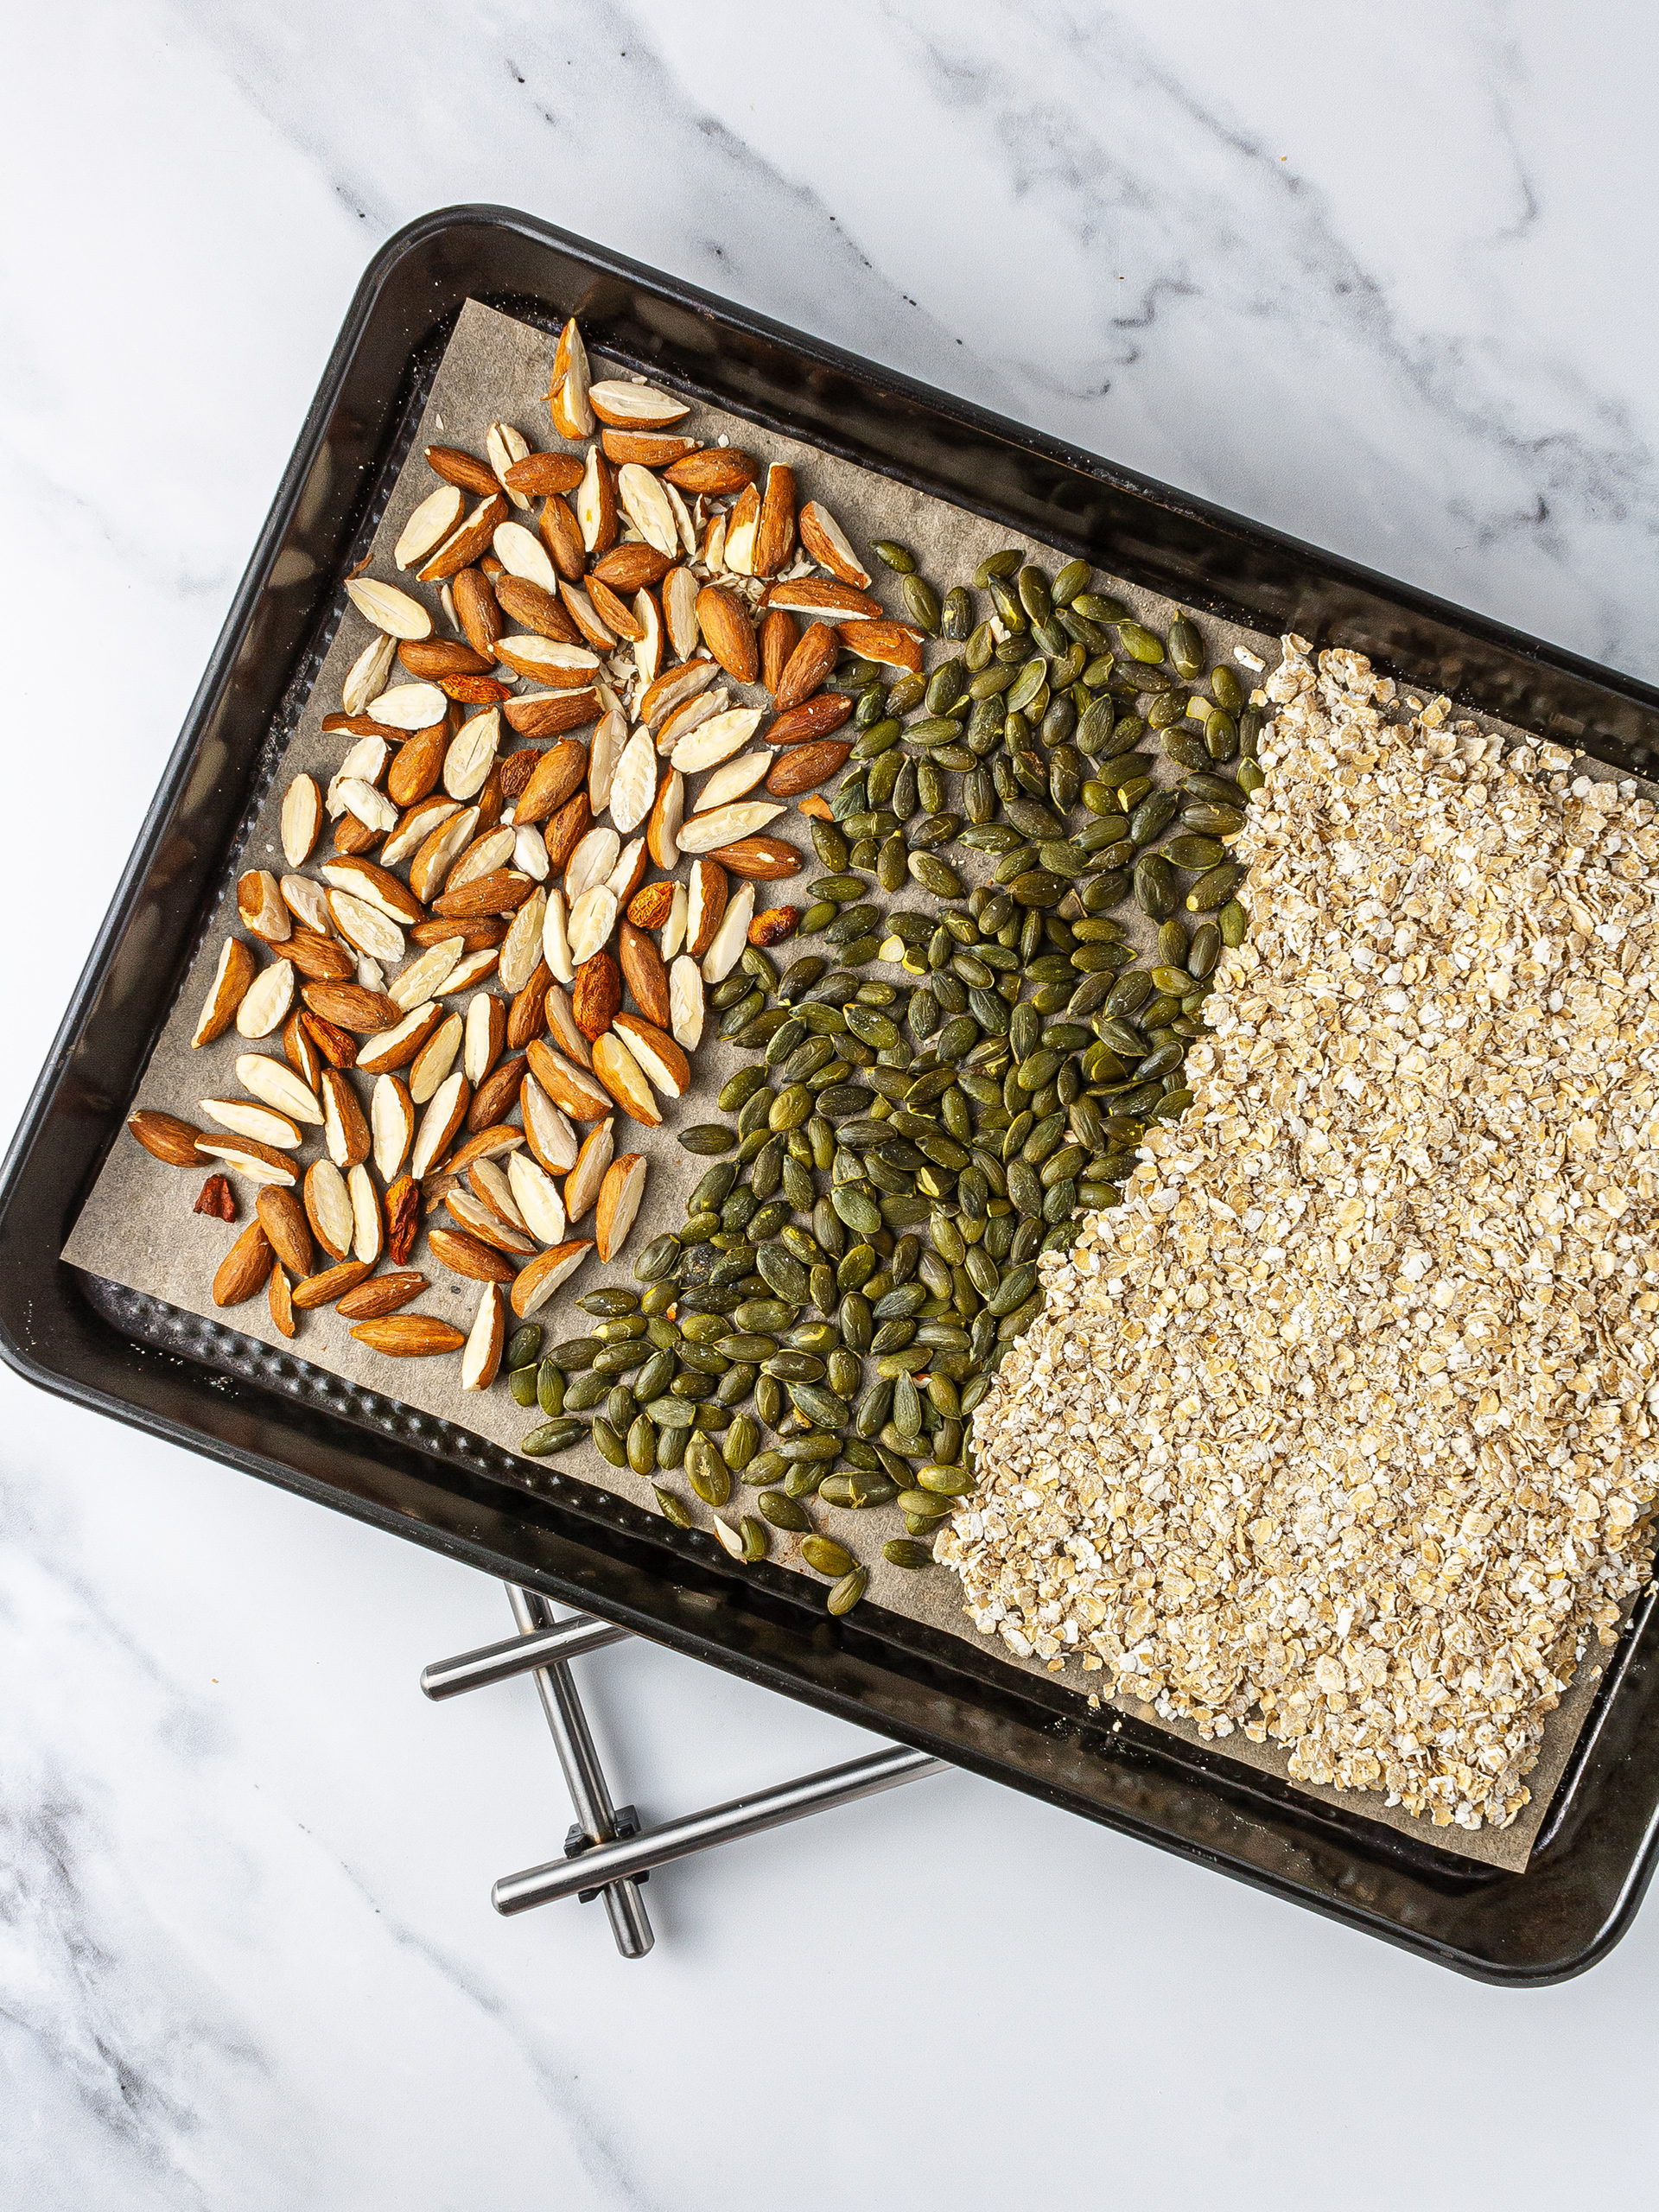 Oat flakes, almonds, and pumpkin seeds roasted in a baking tin.